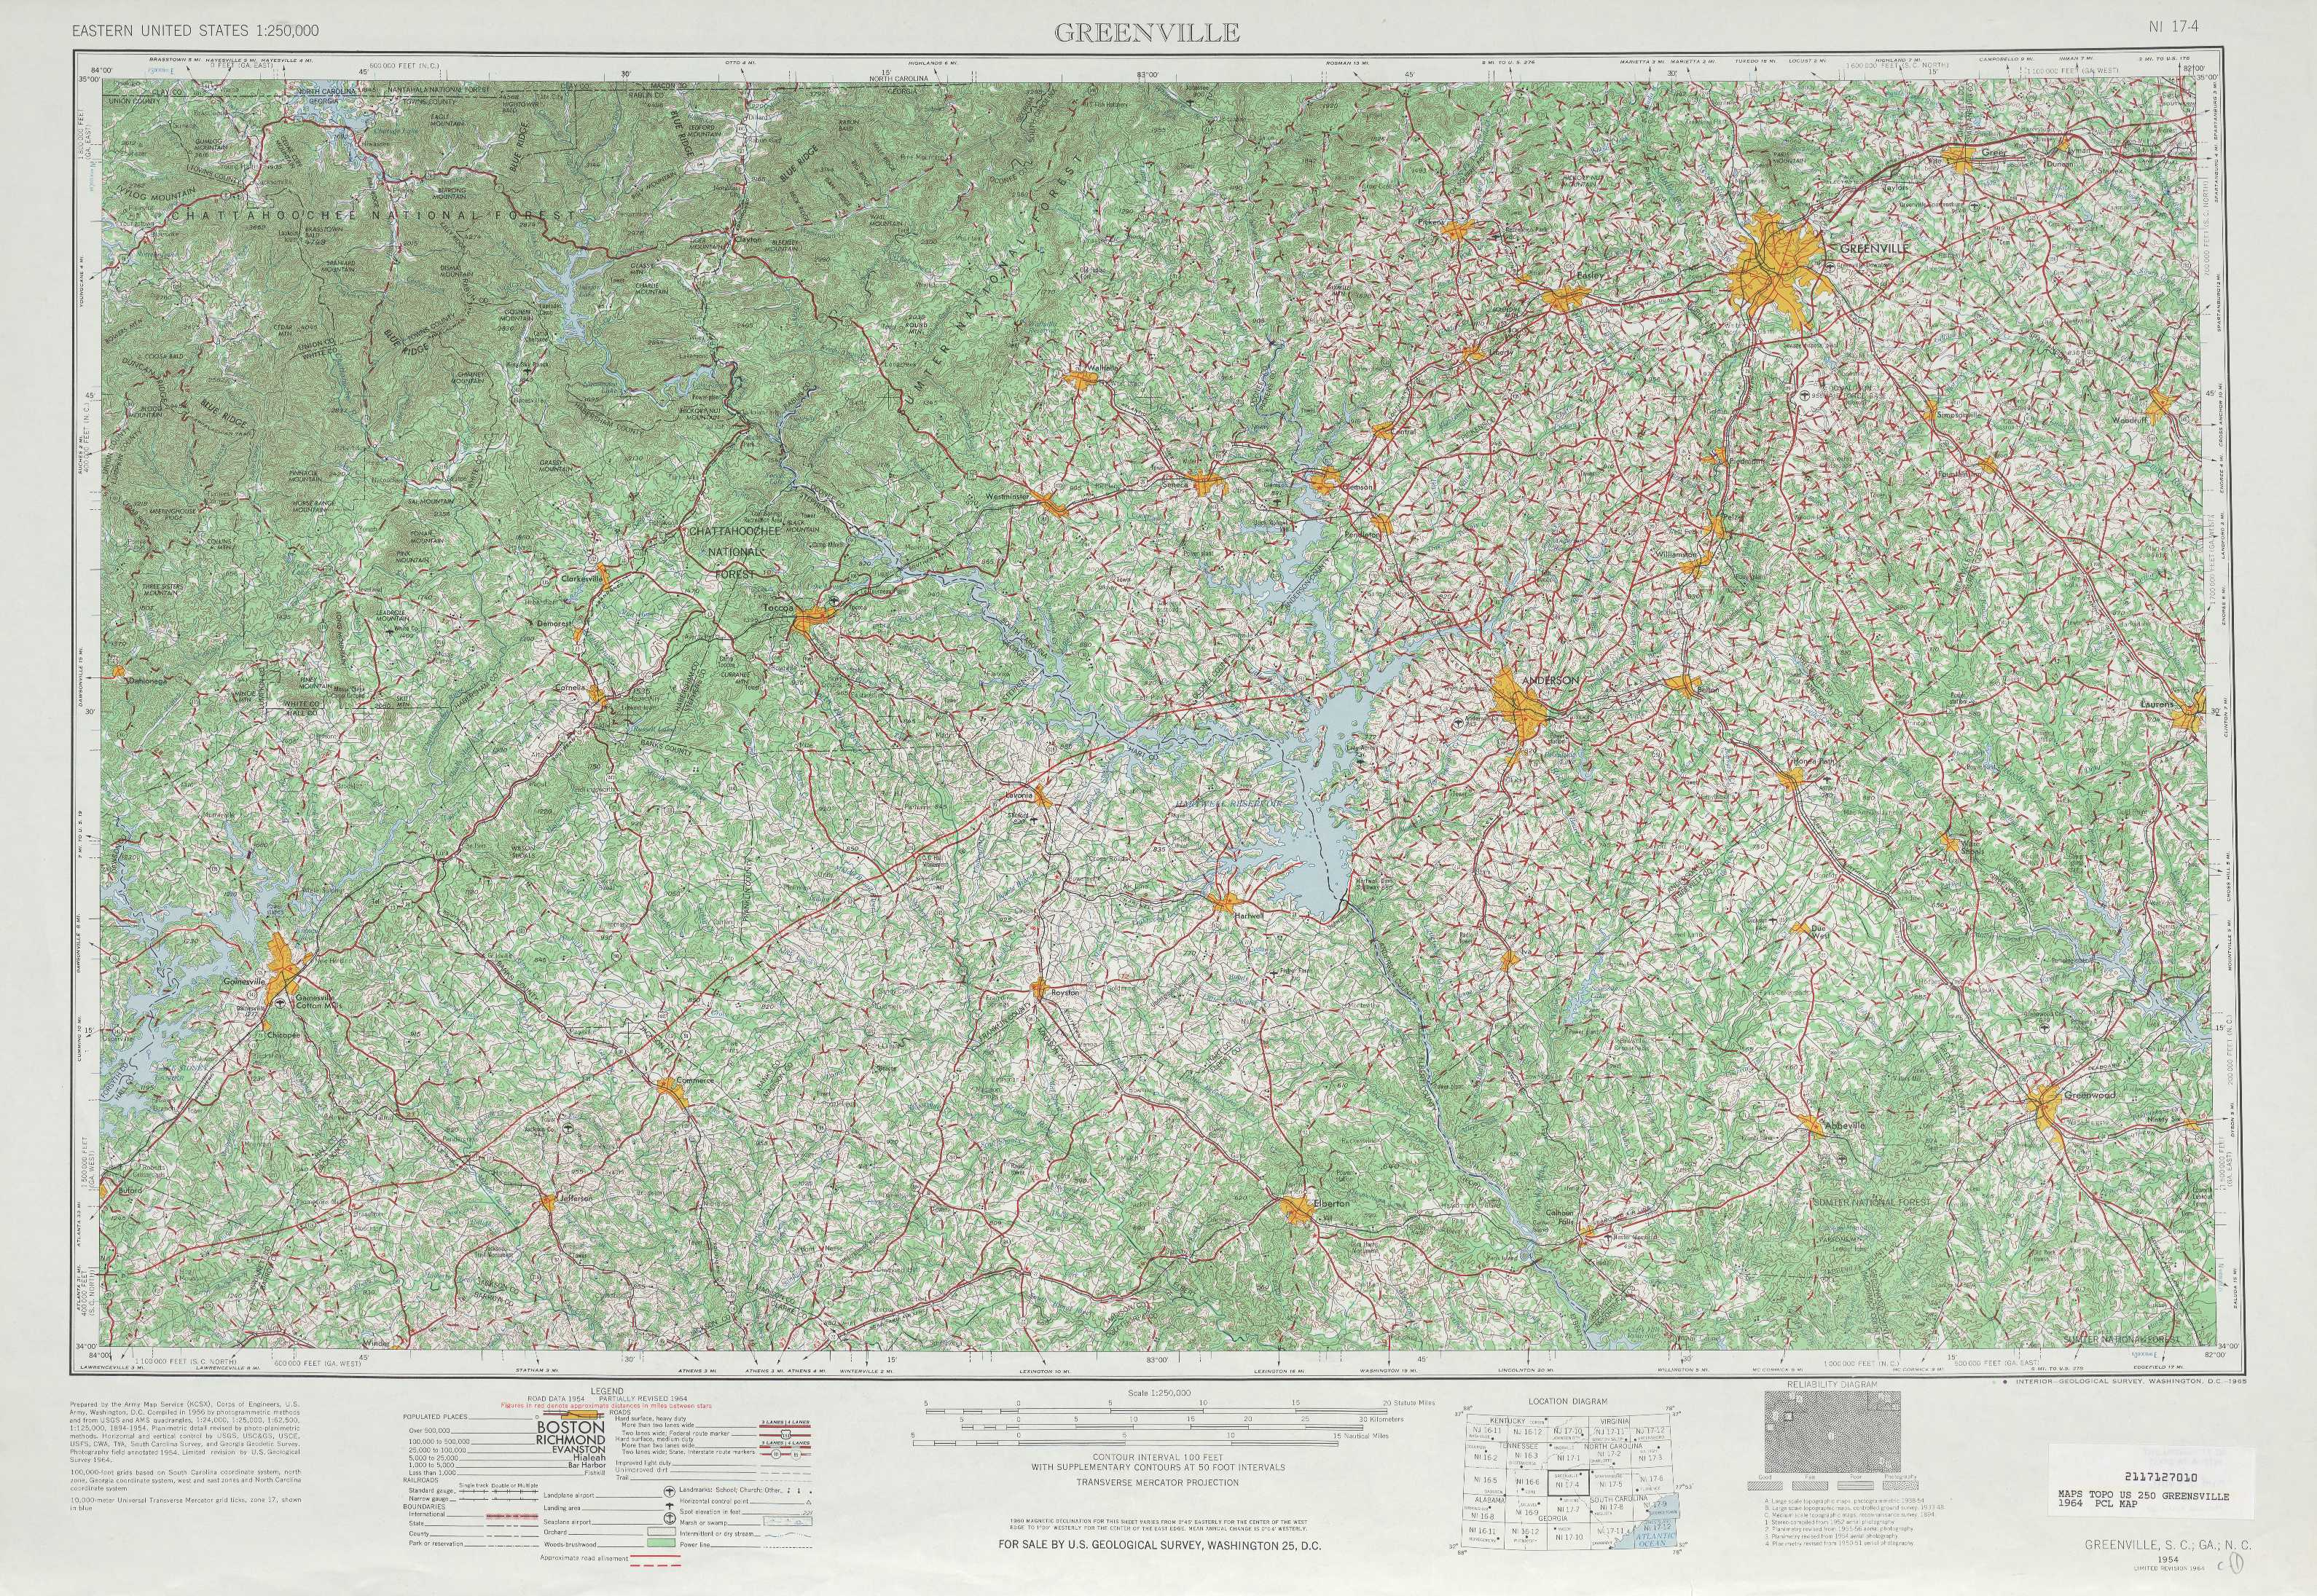 Greenville topographic maps, GA, SC - USGS Topo Quad 34082a1 at 1 ...